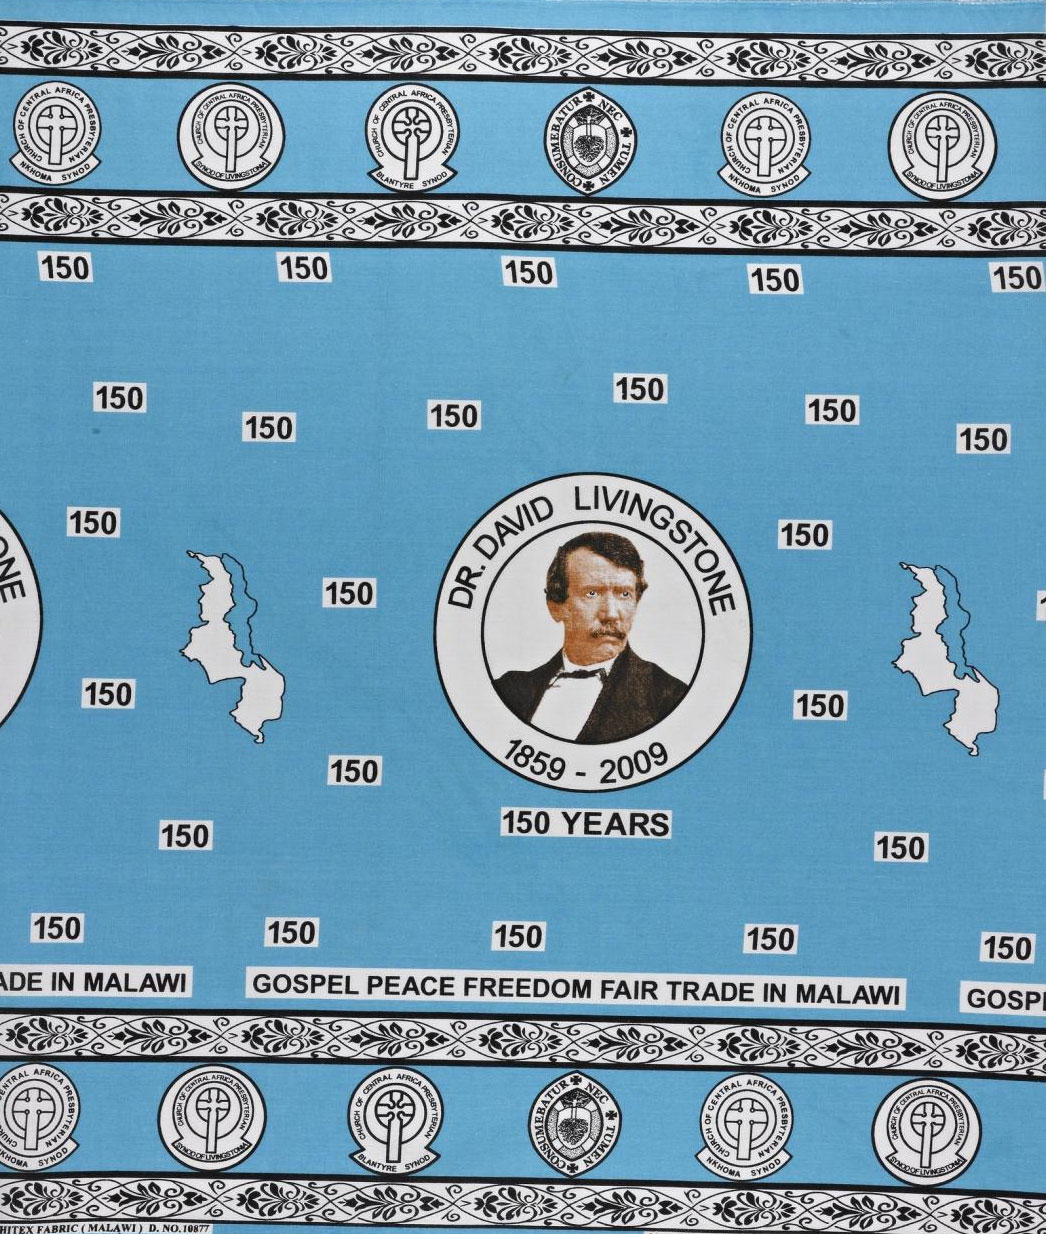 Cotton cloth commissioned by the Church of Central Africa Presbyterian to commemorate 150 years since the arrival of Scottish missionary David Livingstone in Malawi: Africa, Southern Africa, Malawi, 2009.